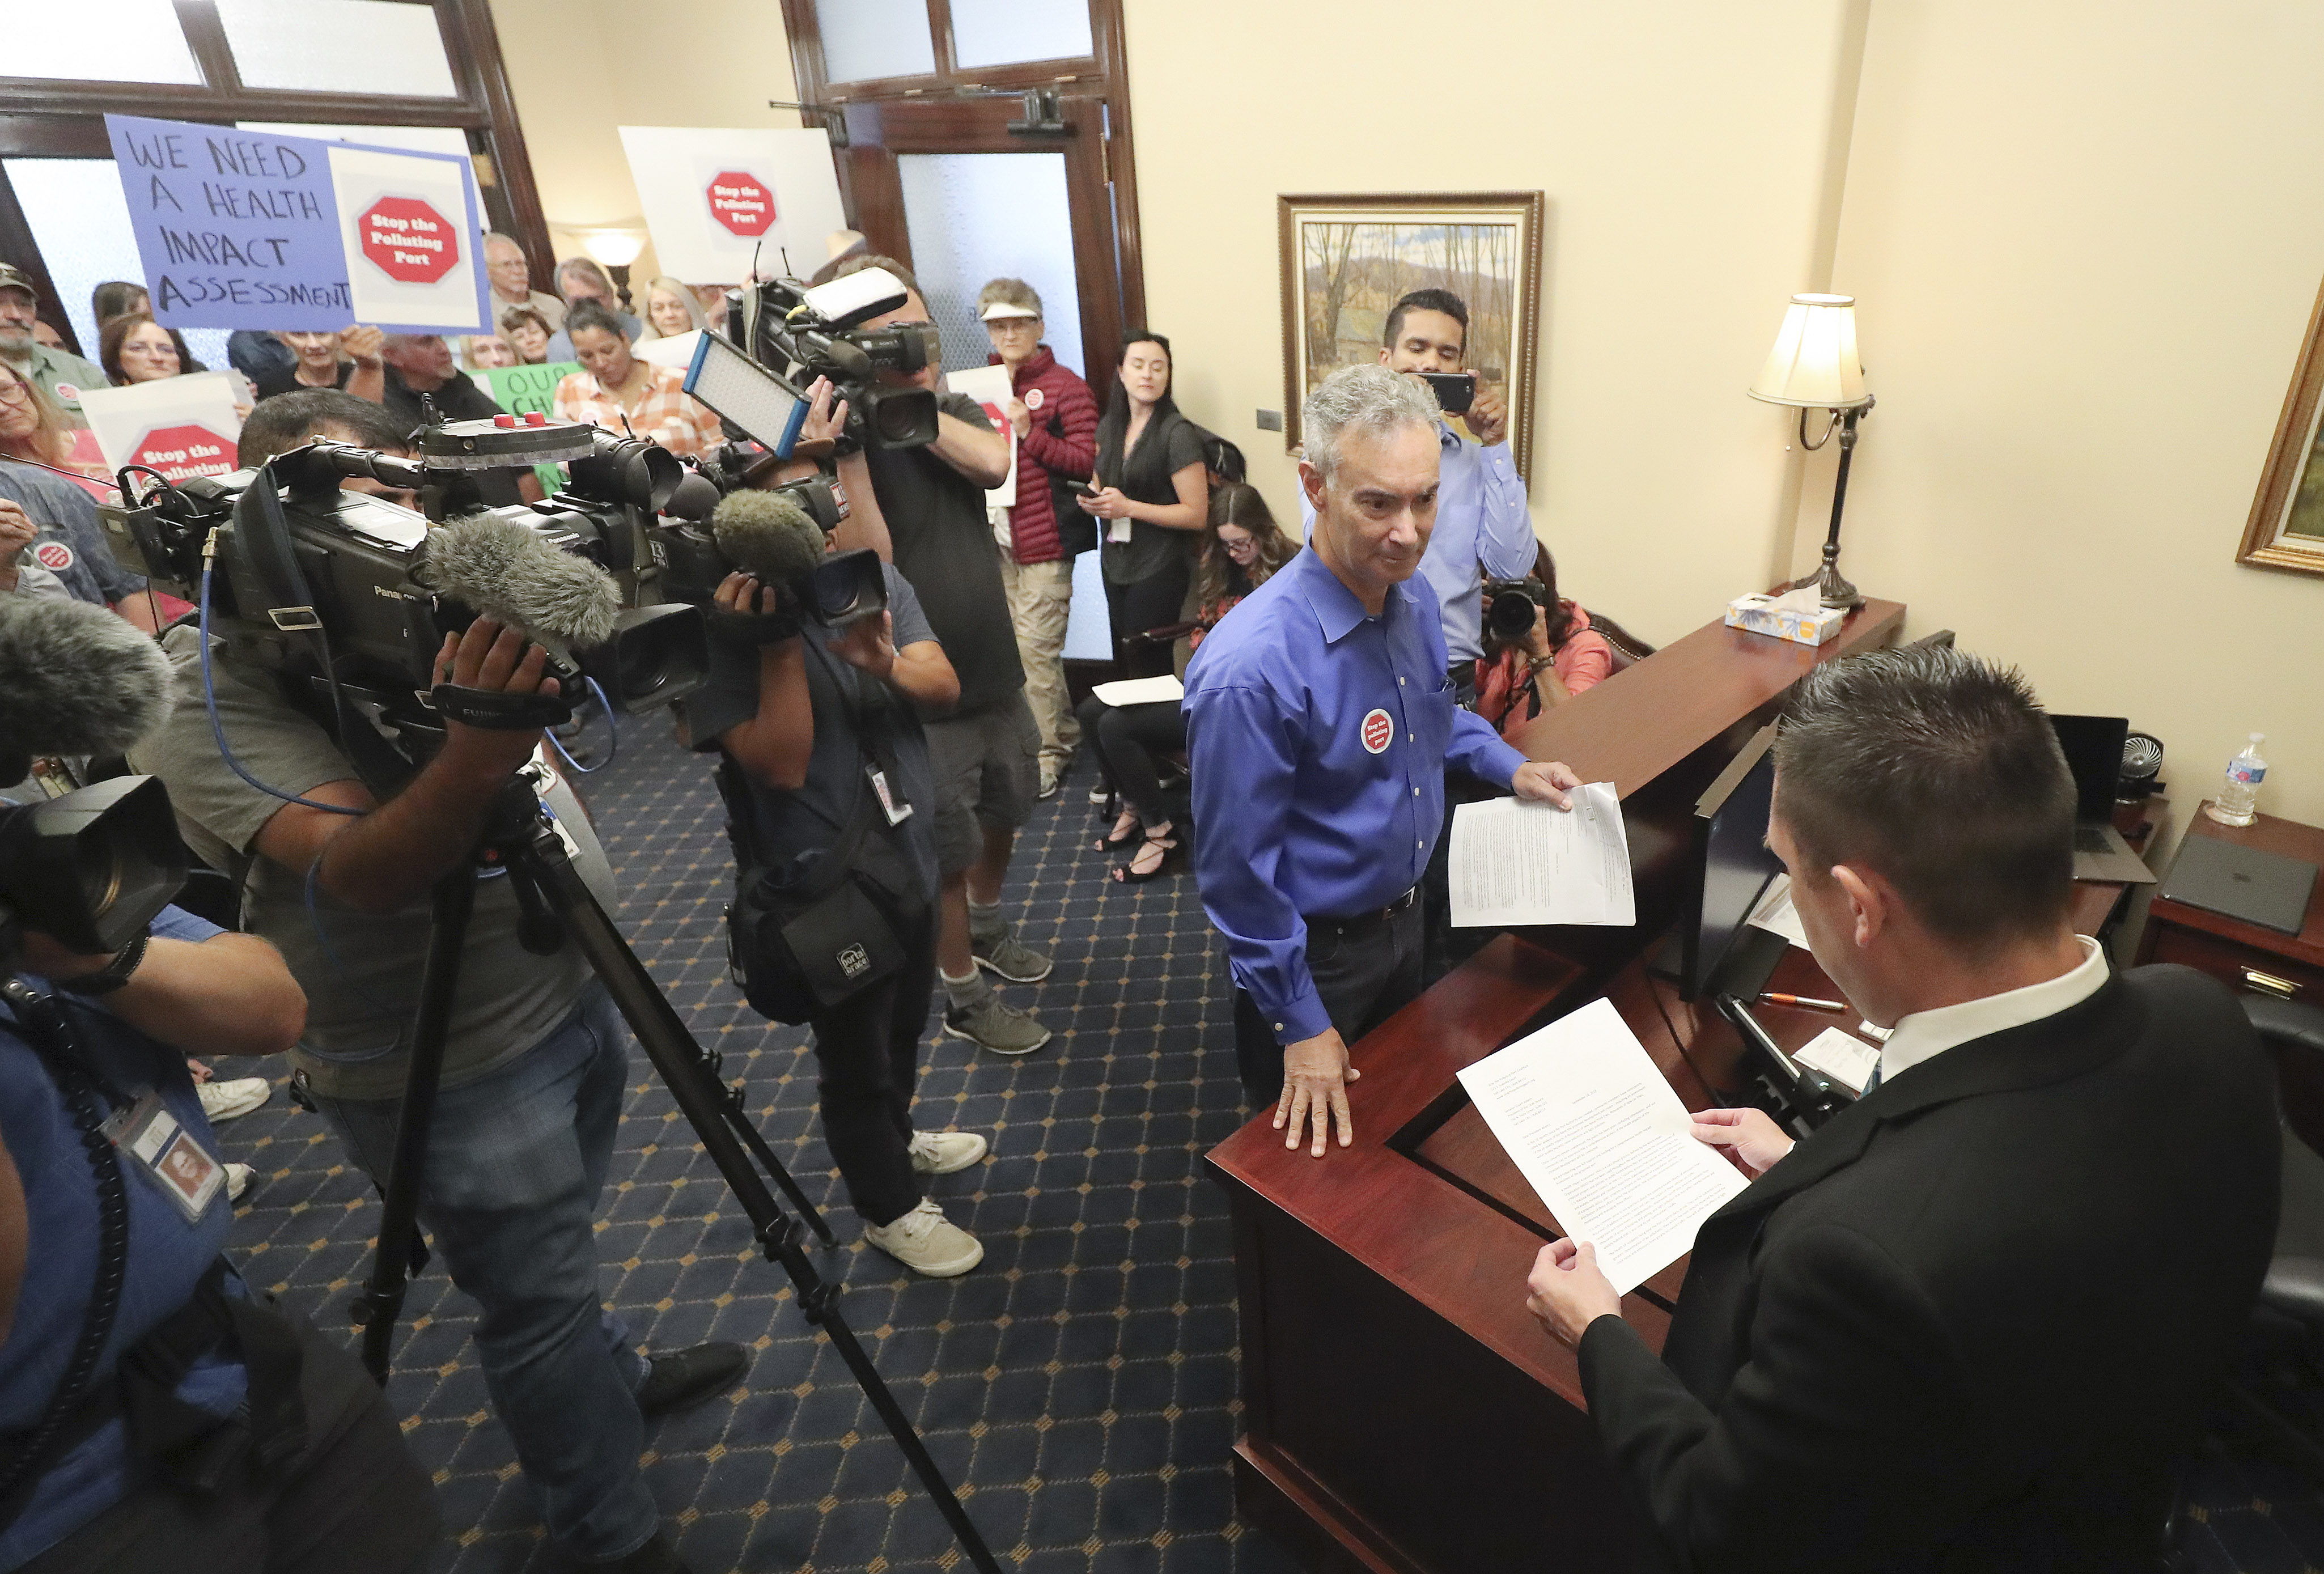 David Scheer and other members of the Stop the Polluting Port Coalition deliver a letterto Senate chief of staff Mark Thomasafter holding a rally at the Capitol in Salt Lake City on Wednesday, Sept. 18, 2019. The letter asked for legislative support and funding of a health impact assessment of the proposed Utah Inland Port.